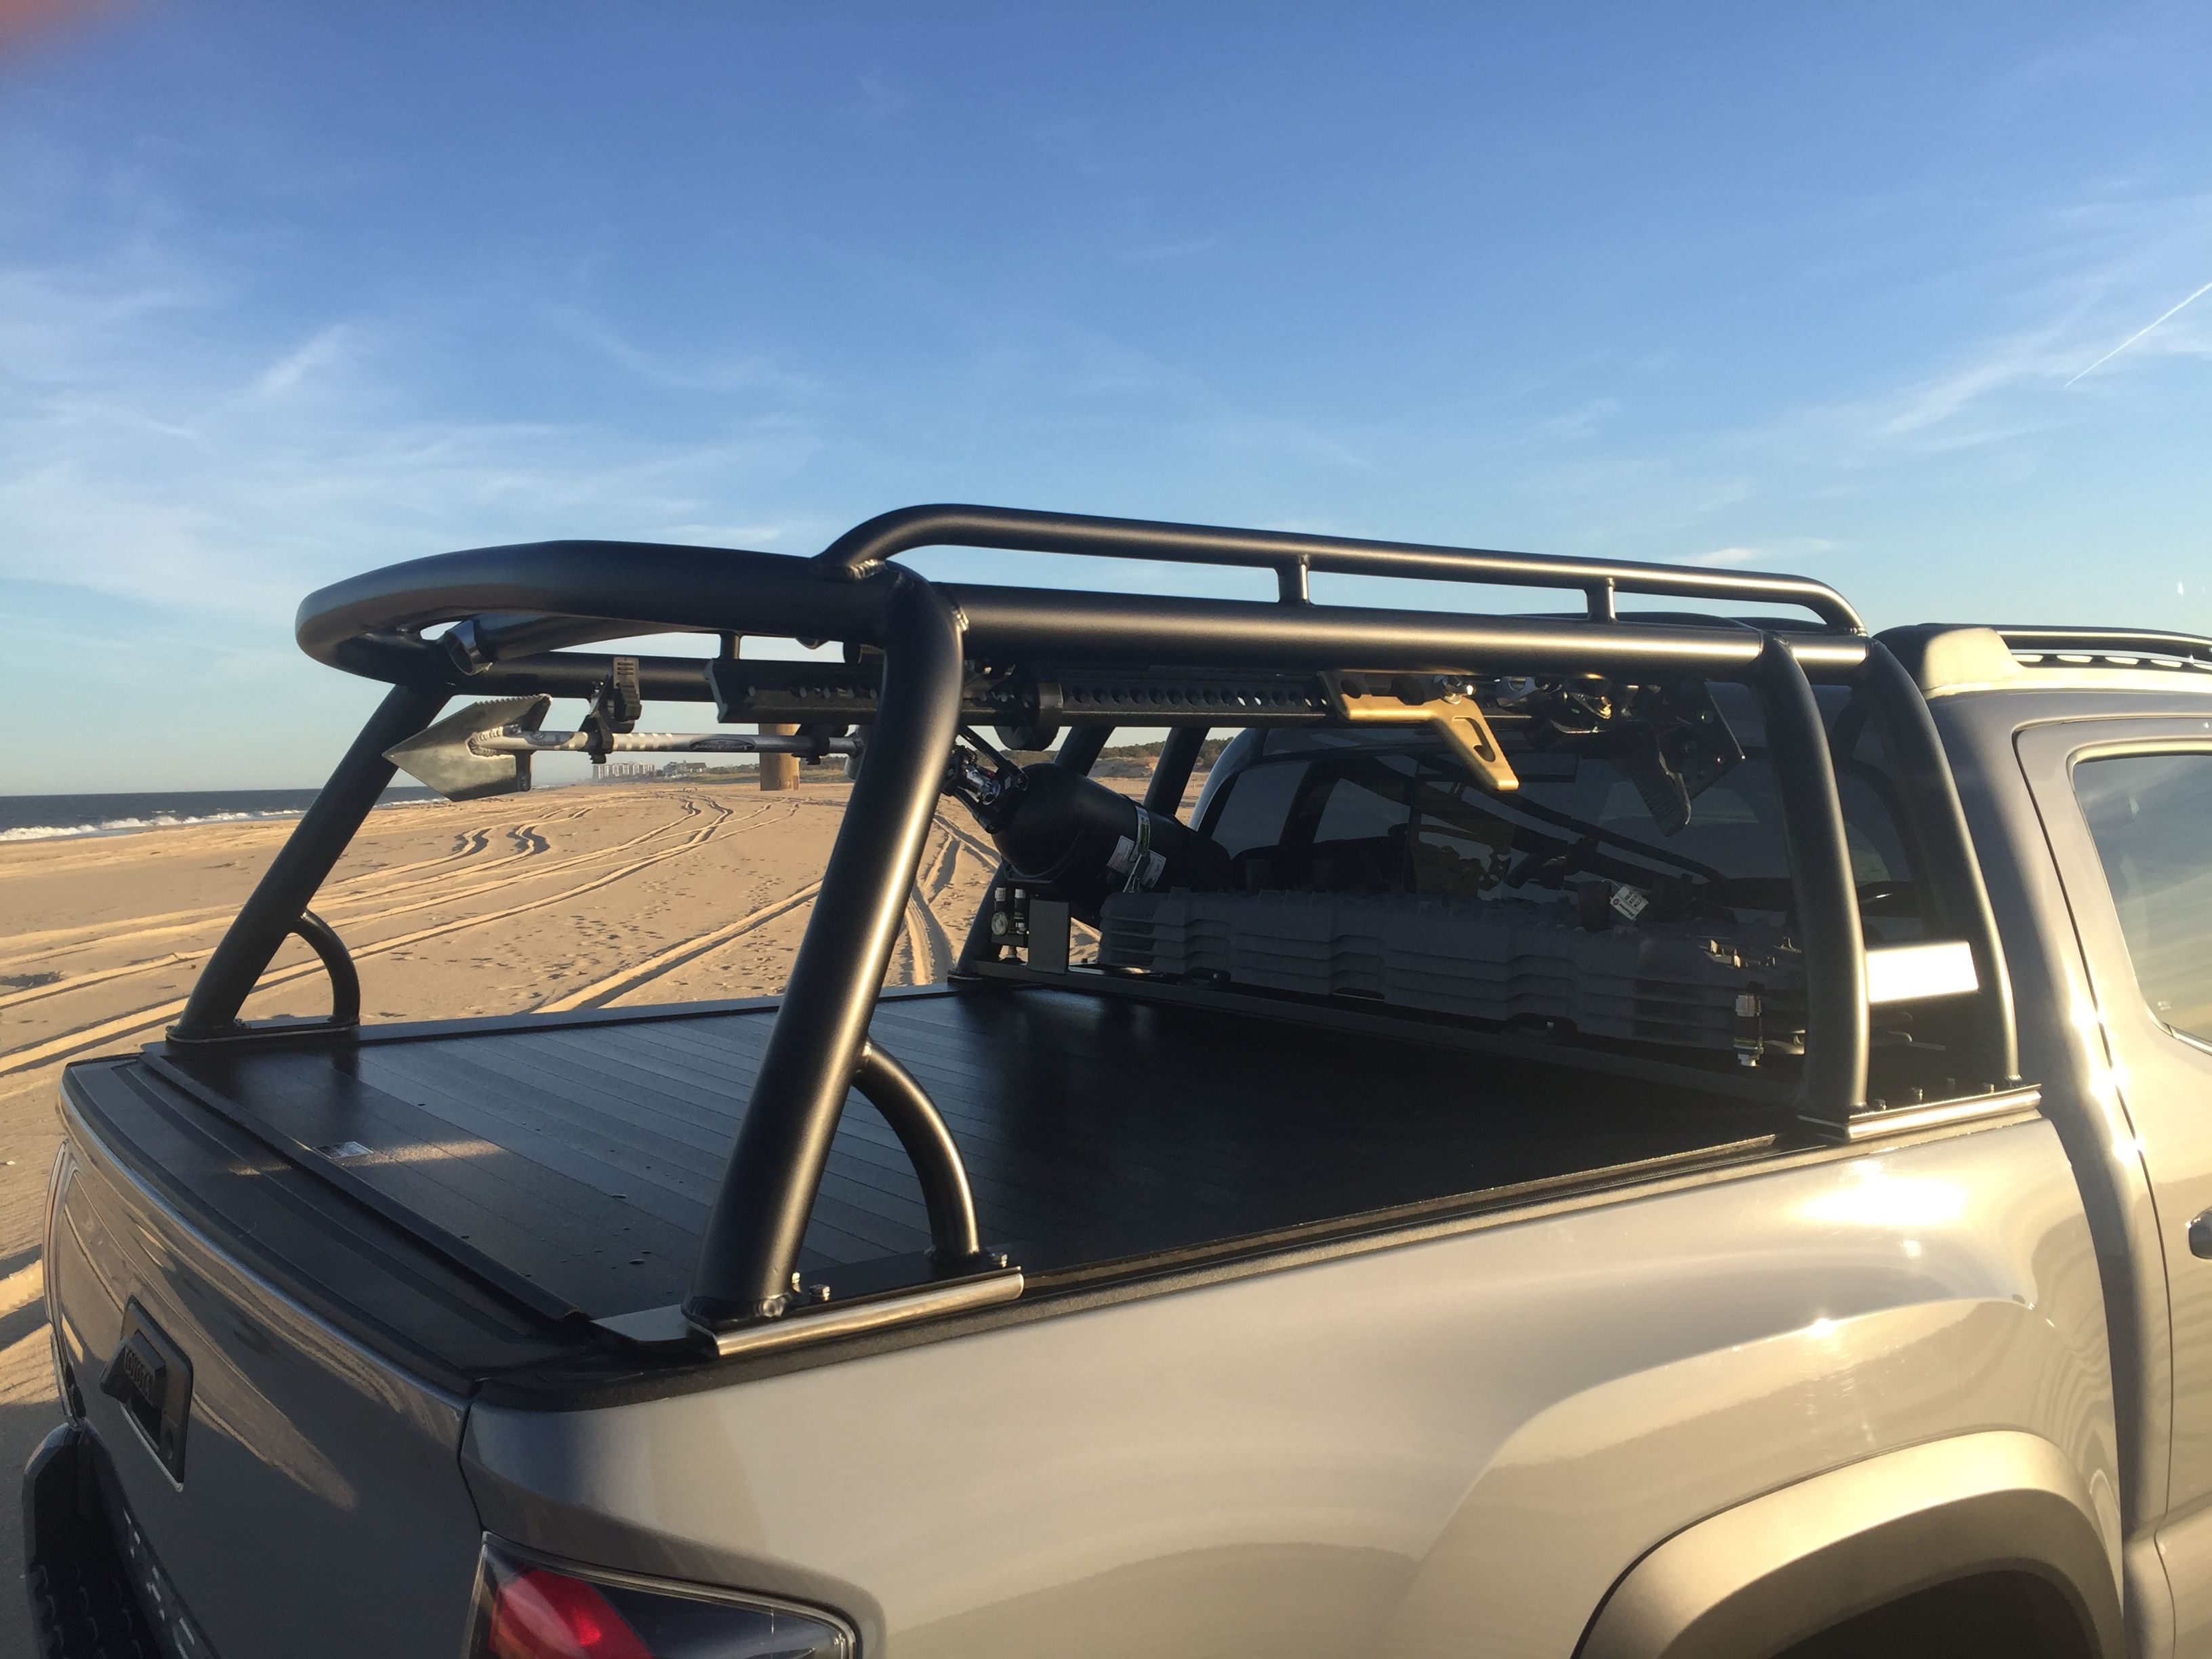 Pin by Libby Dunn on tacoma bed rack | Pinterest | Toyota ...